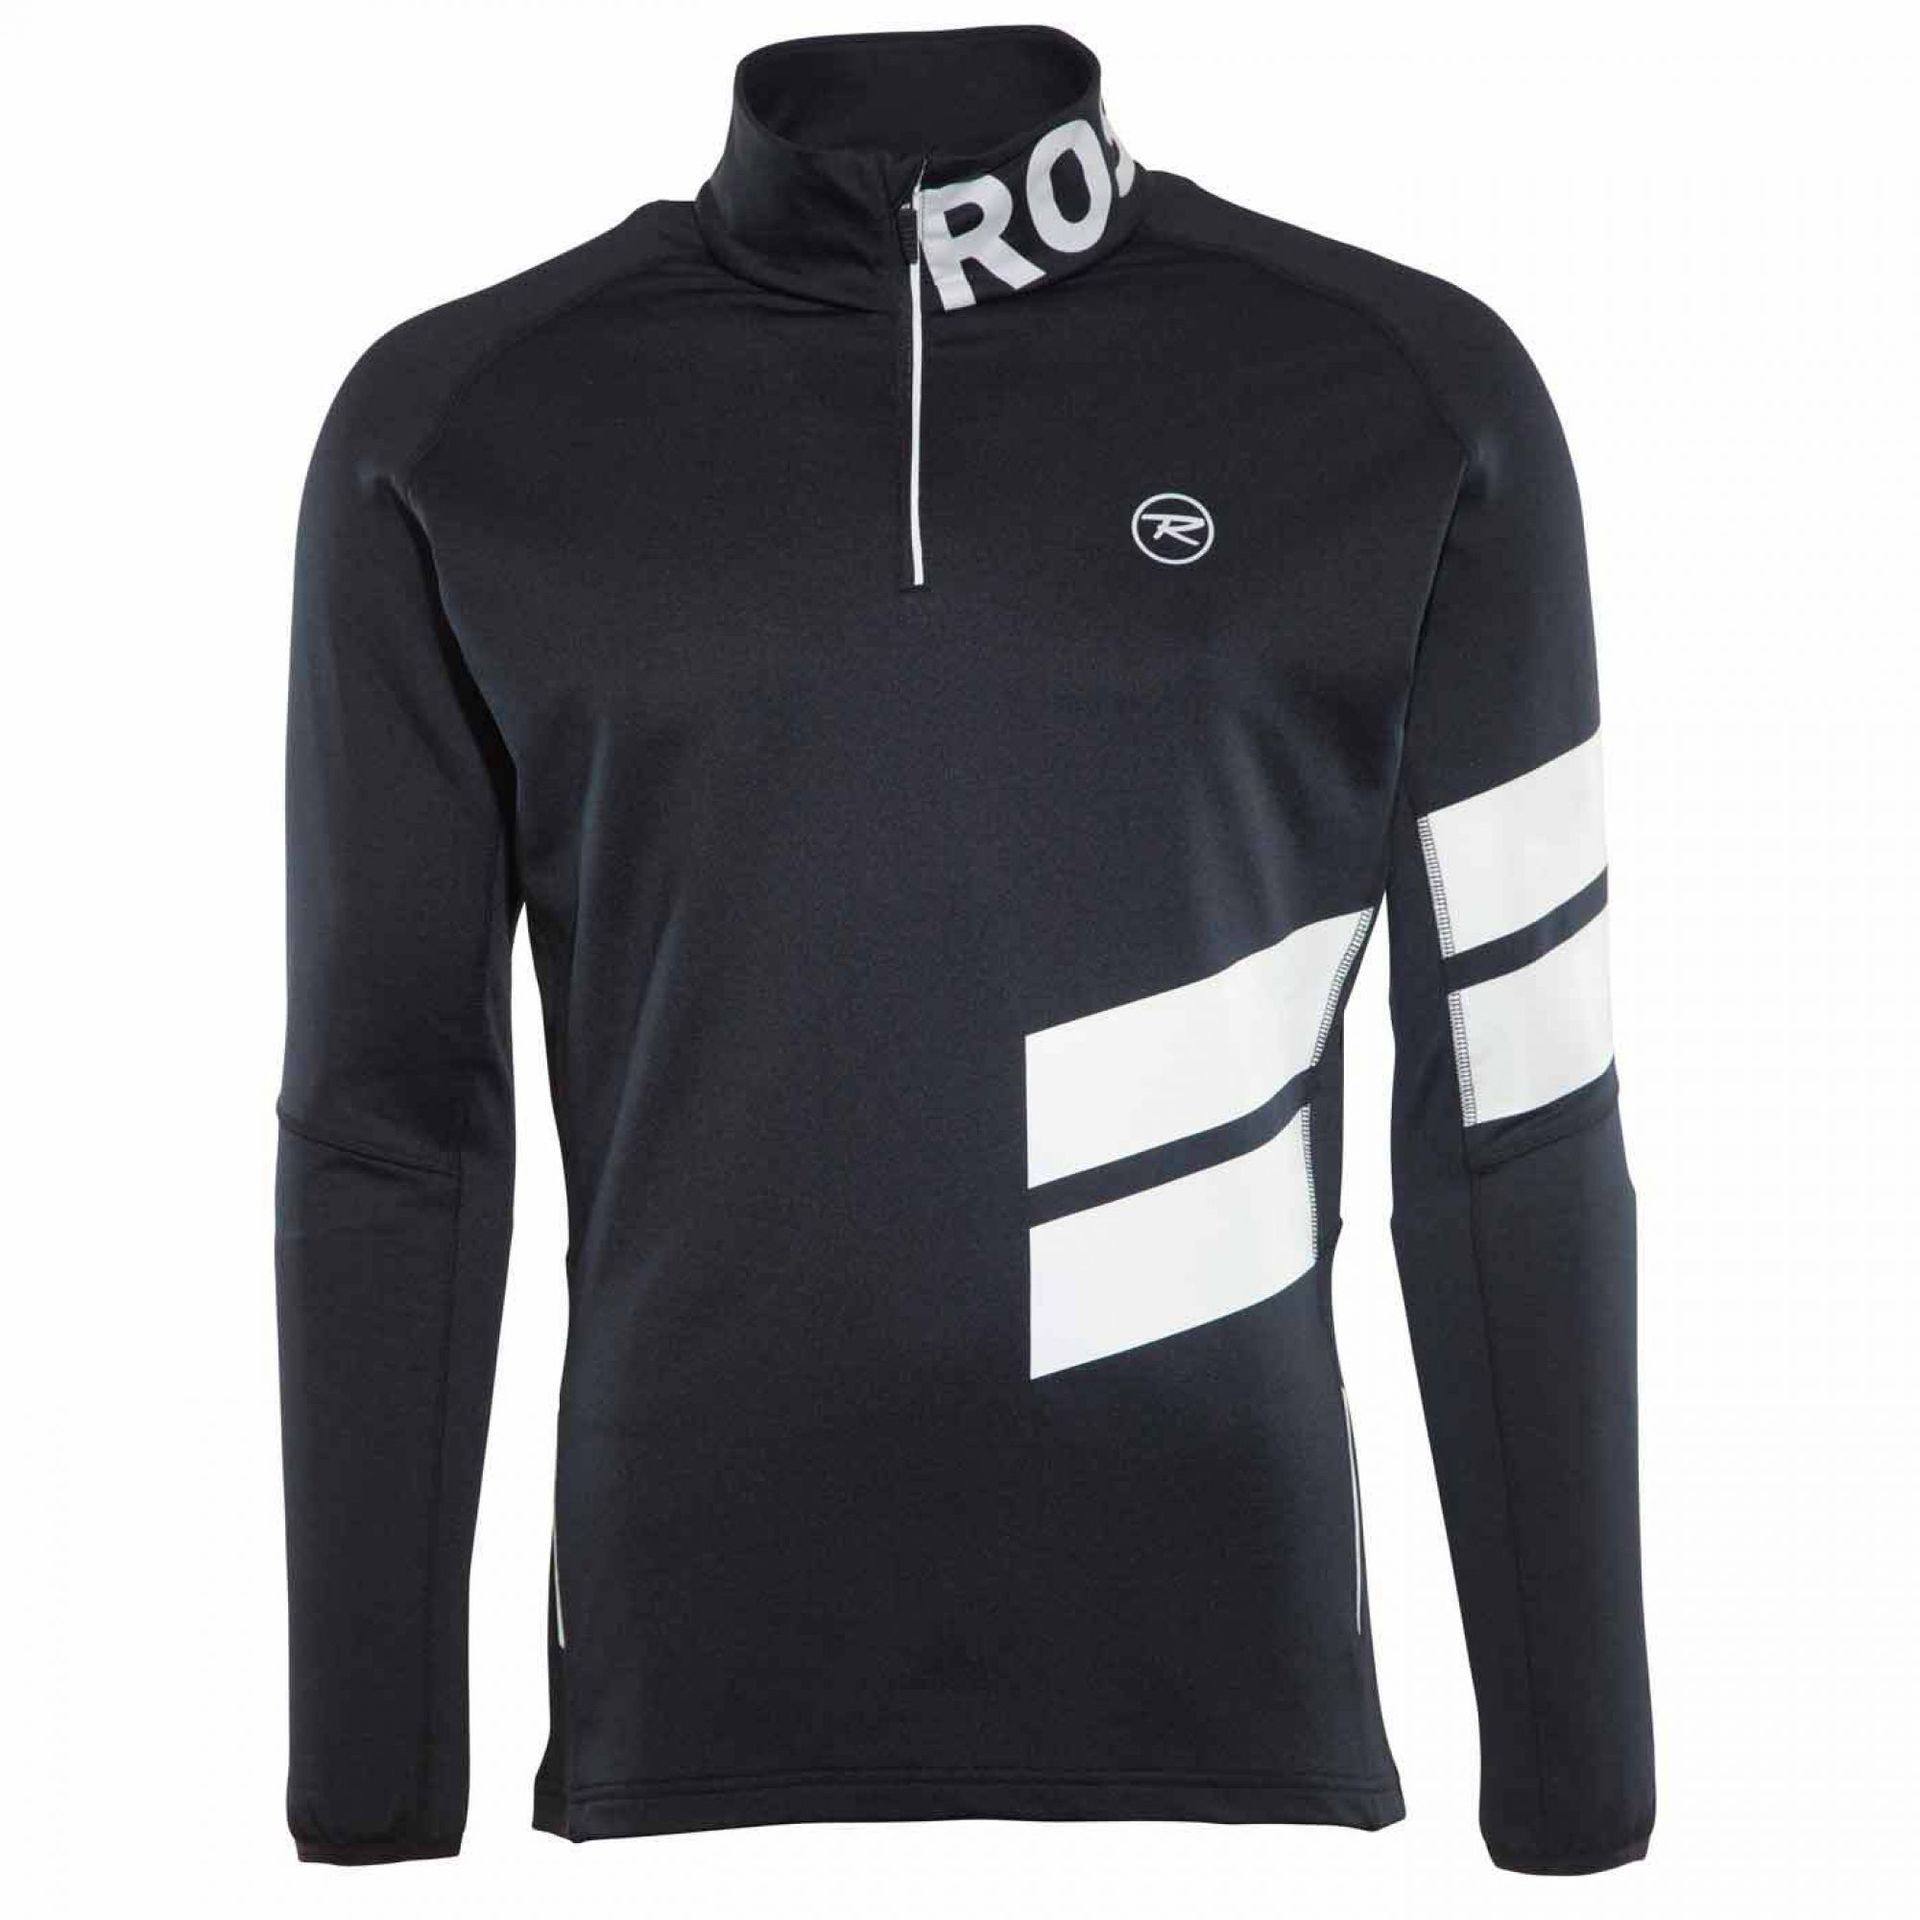 BLUZA ROSSIGNOL HERO WARM 12 ZIP